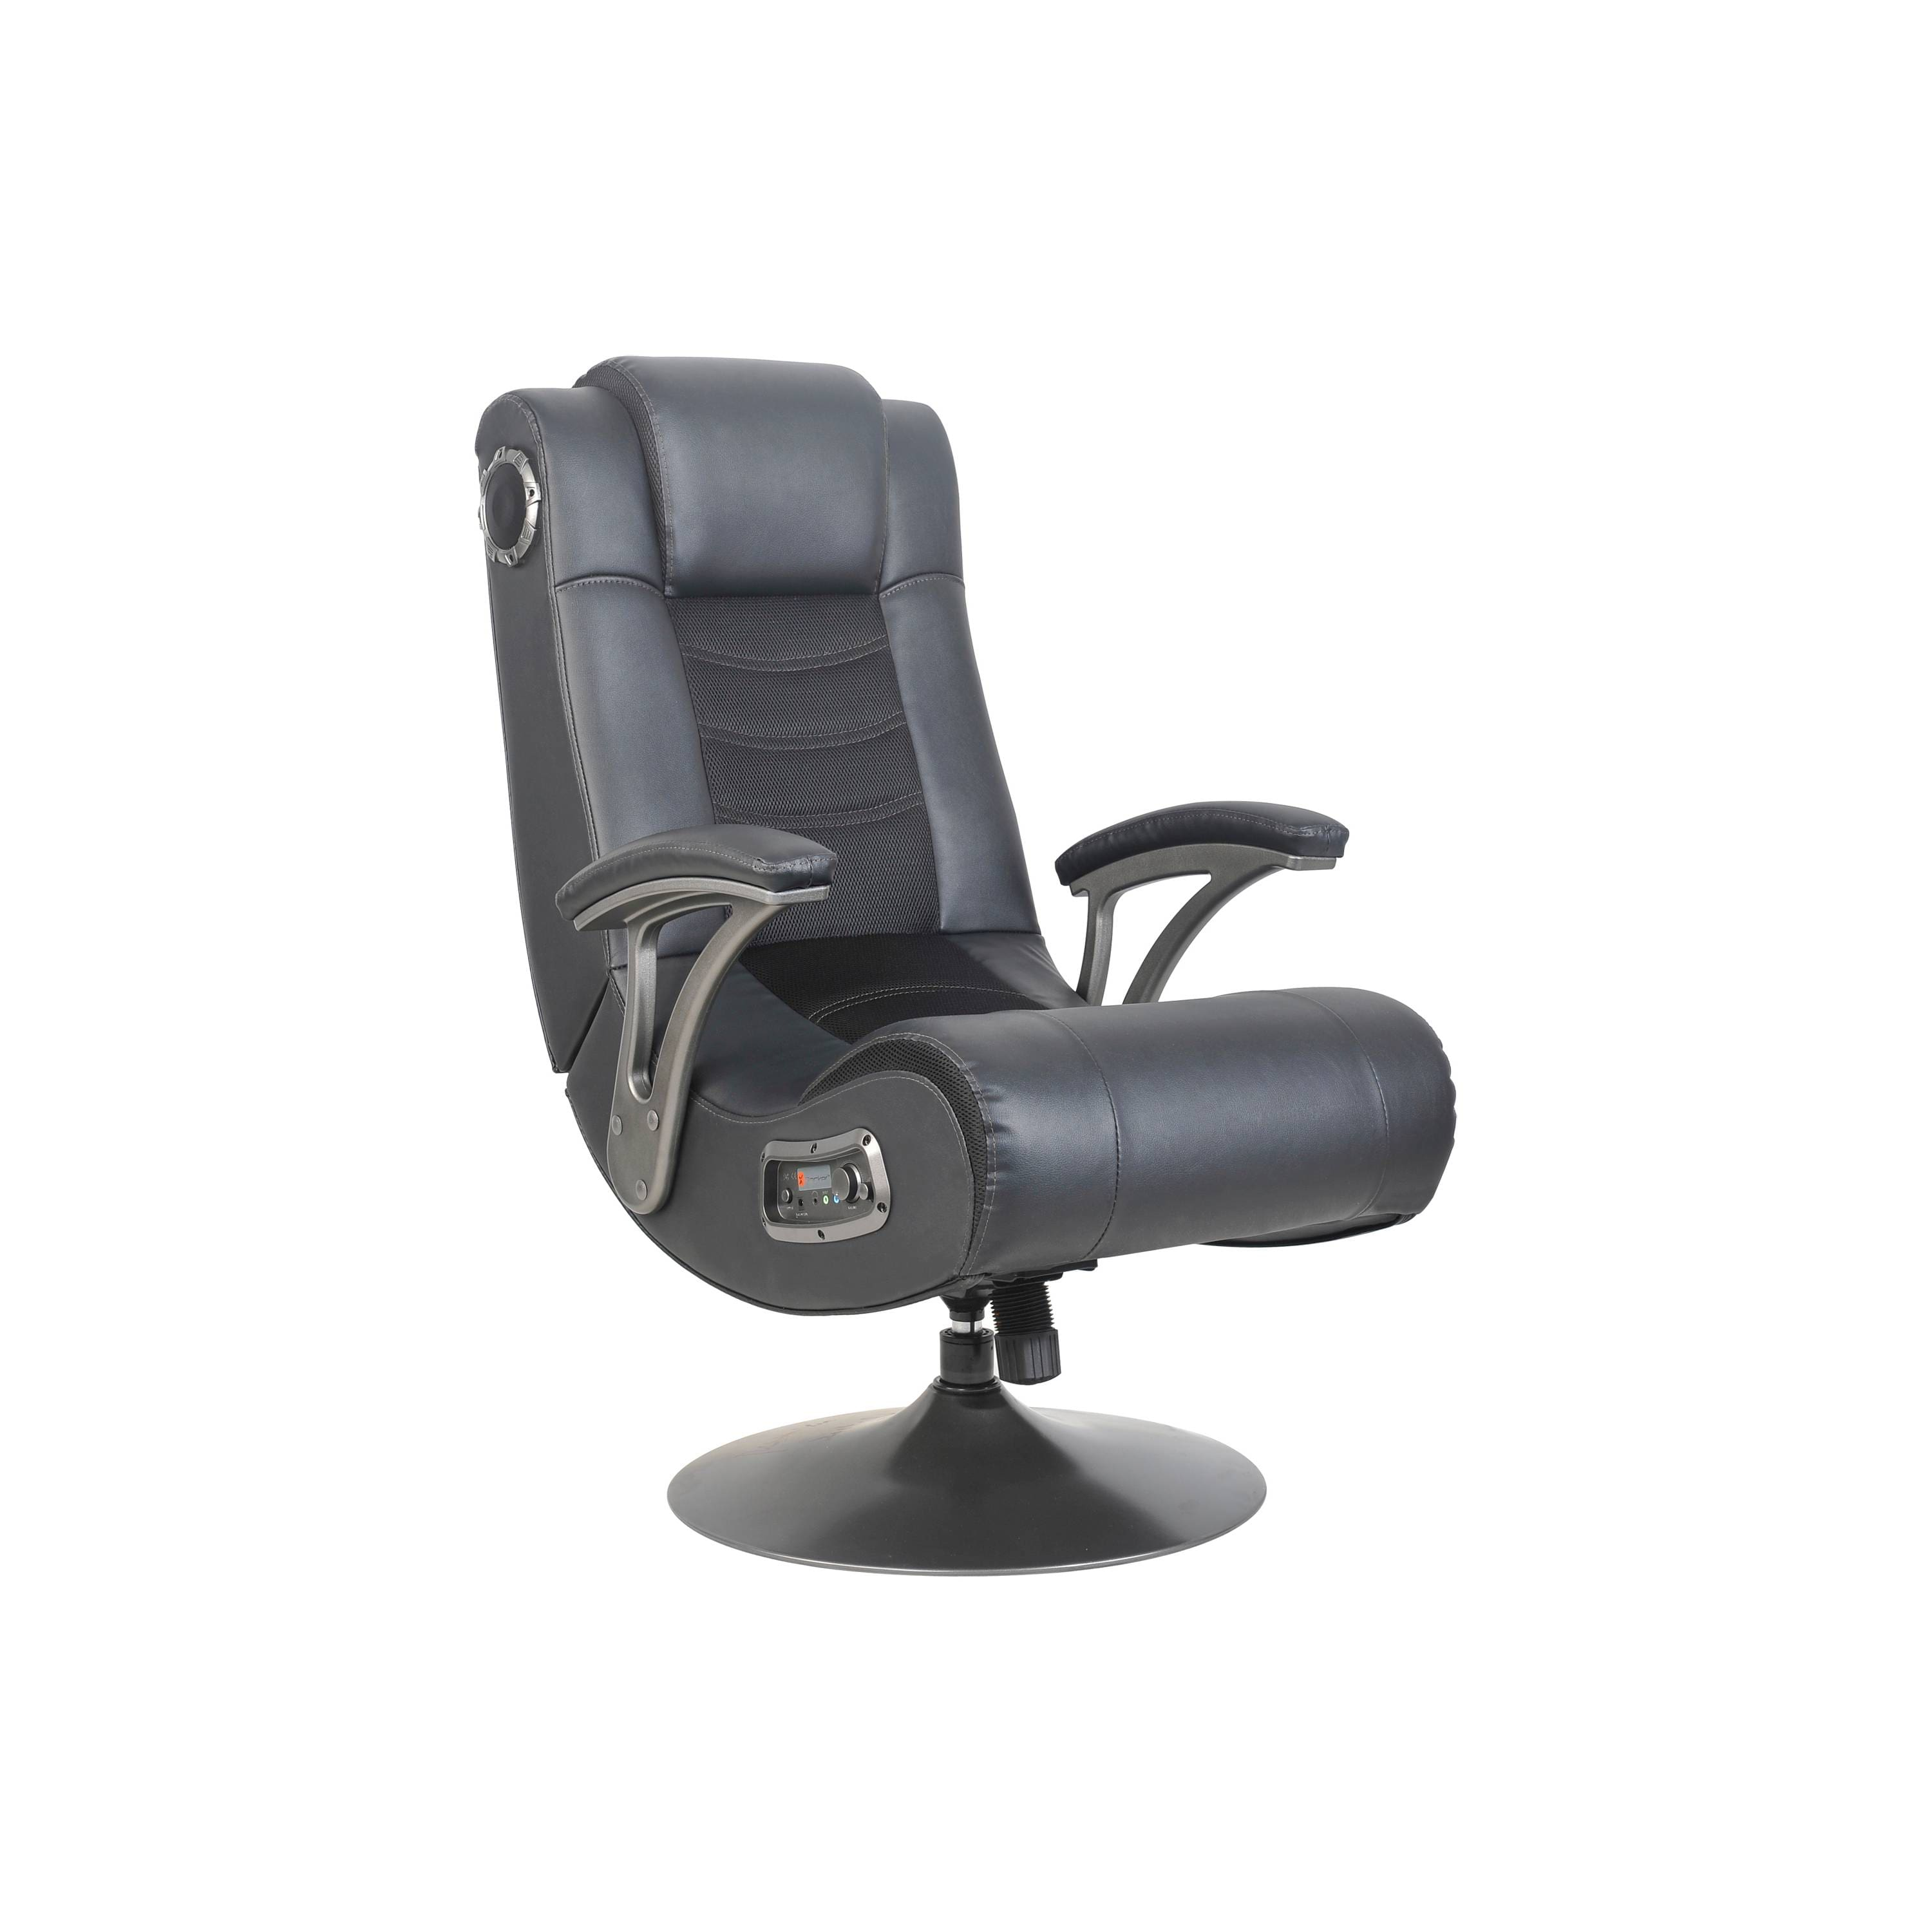 target game chairs recliner chair walmart x pro 2 pedestal gaming in store only ymmv 38